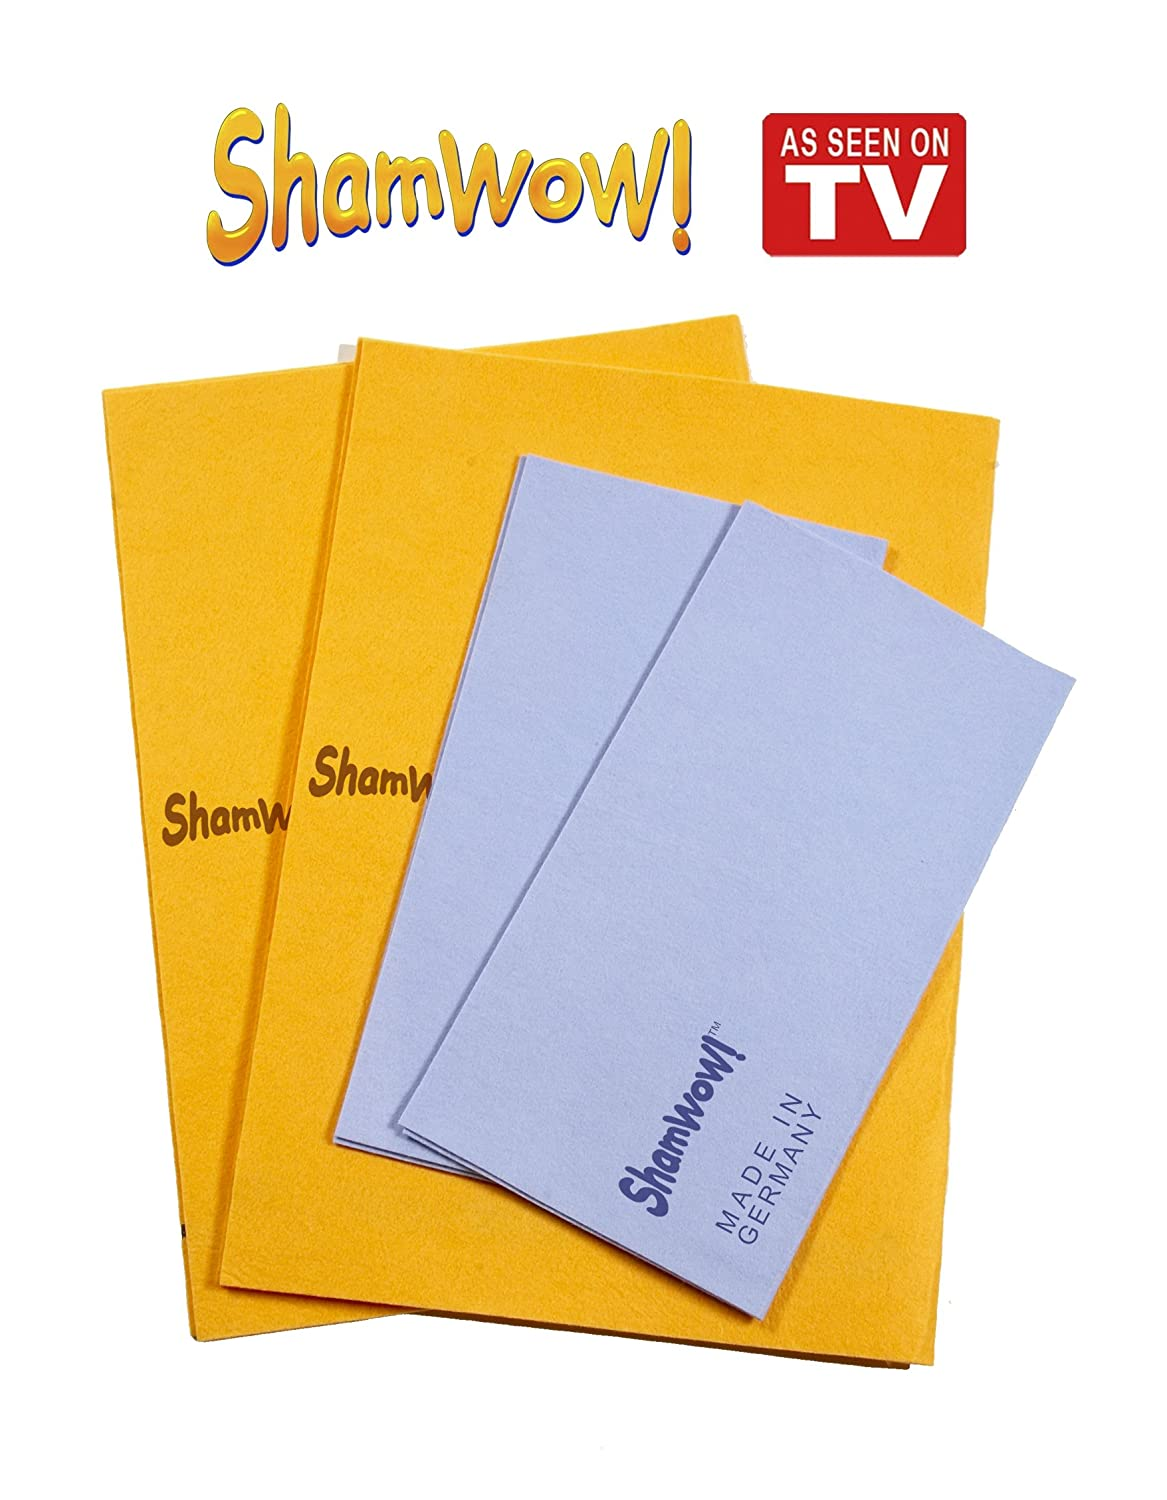 The Original Shamwow - Super Absorbent Multi-Purpose Cleaning Shammy (Chamois) Towel Cloth, Machine Washable, Will Not Scratch (1 Orange, 1 Blue) Square One Entertainment Inc. ShamwowOB2